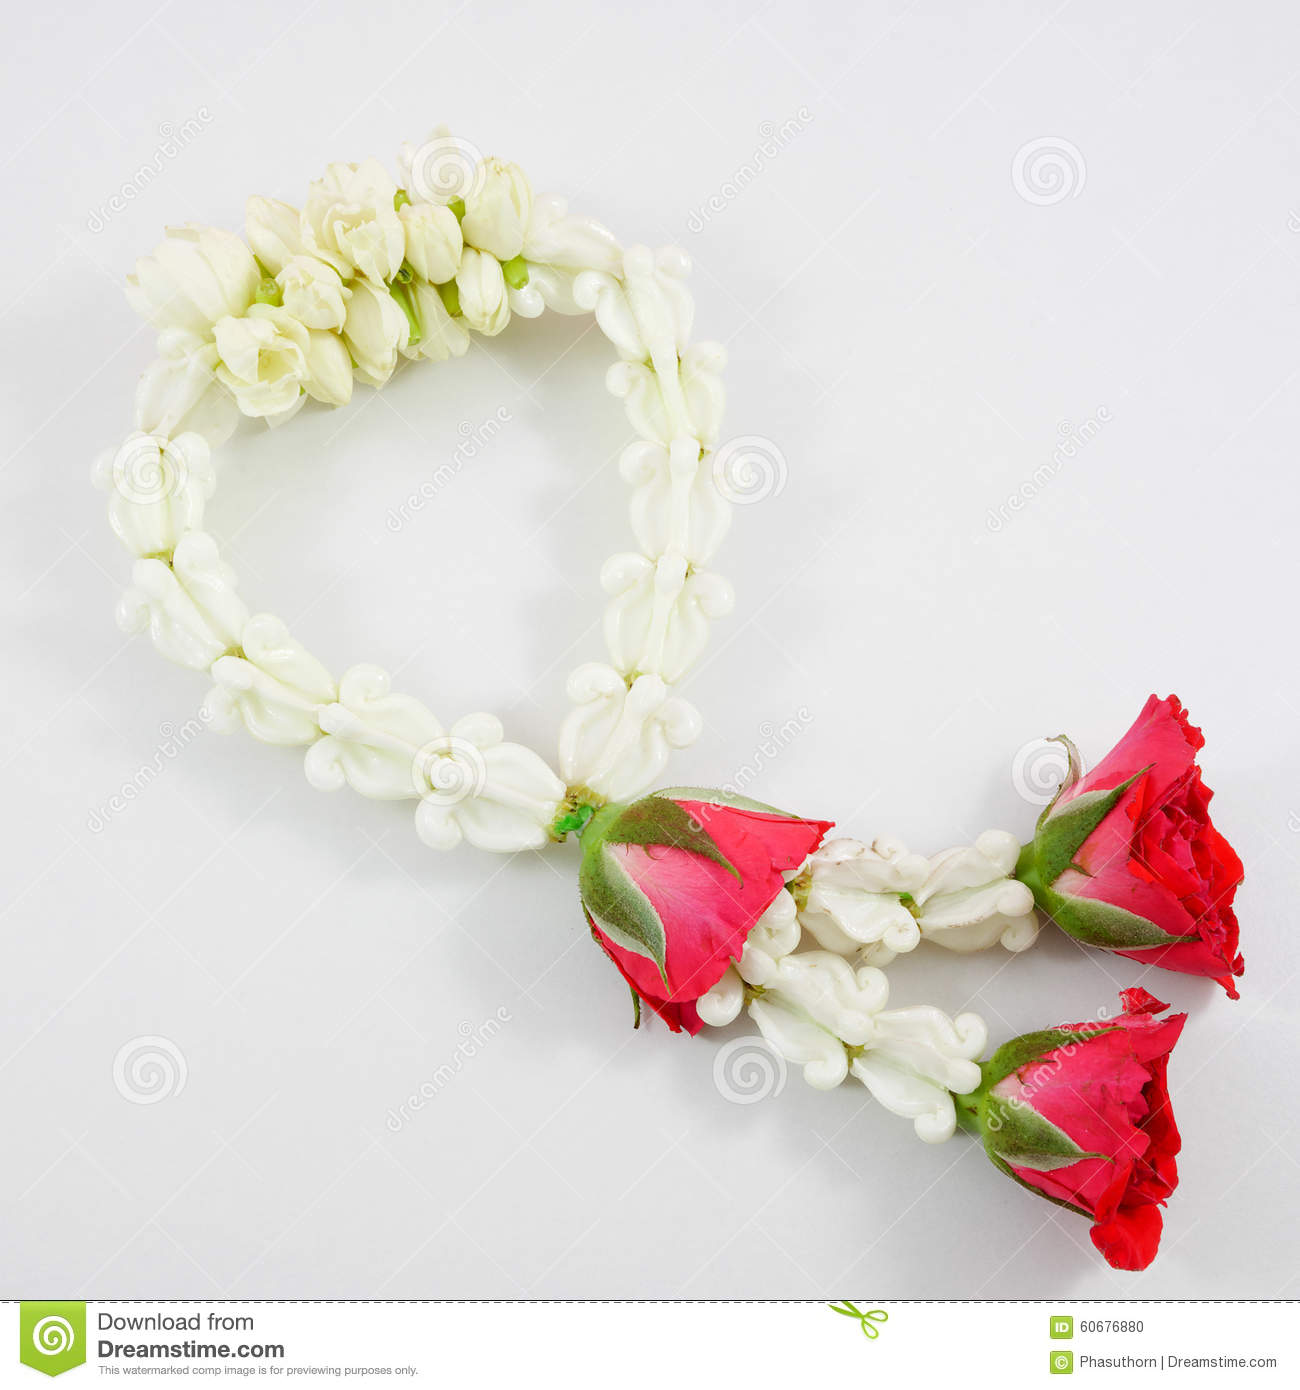 Thai jasmine garland stock photo image of buddhist flora 60676880 thai jasmine garland izmirmasajfo